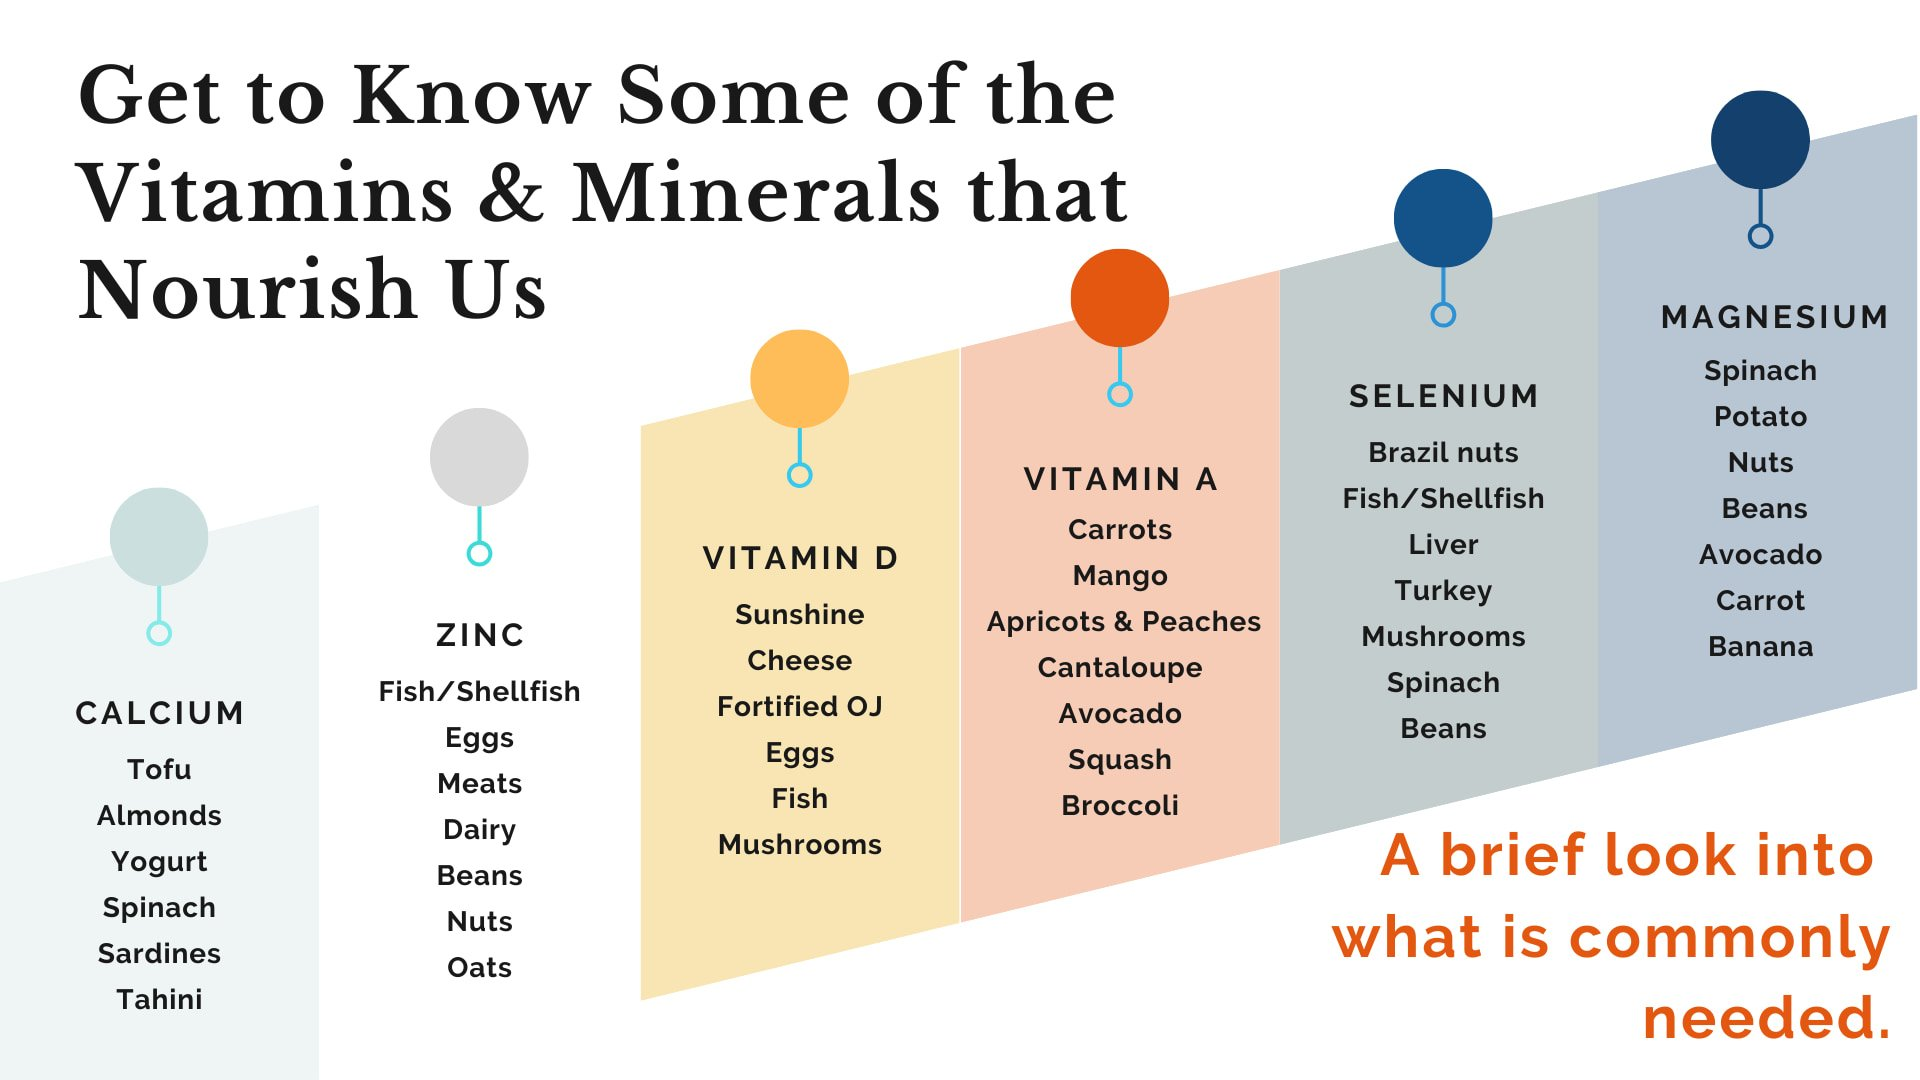 nutrients and what foods we need